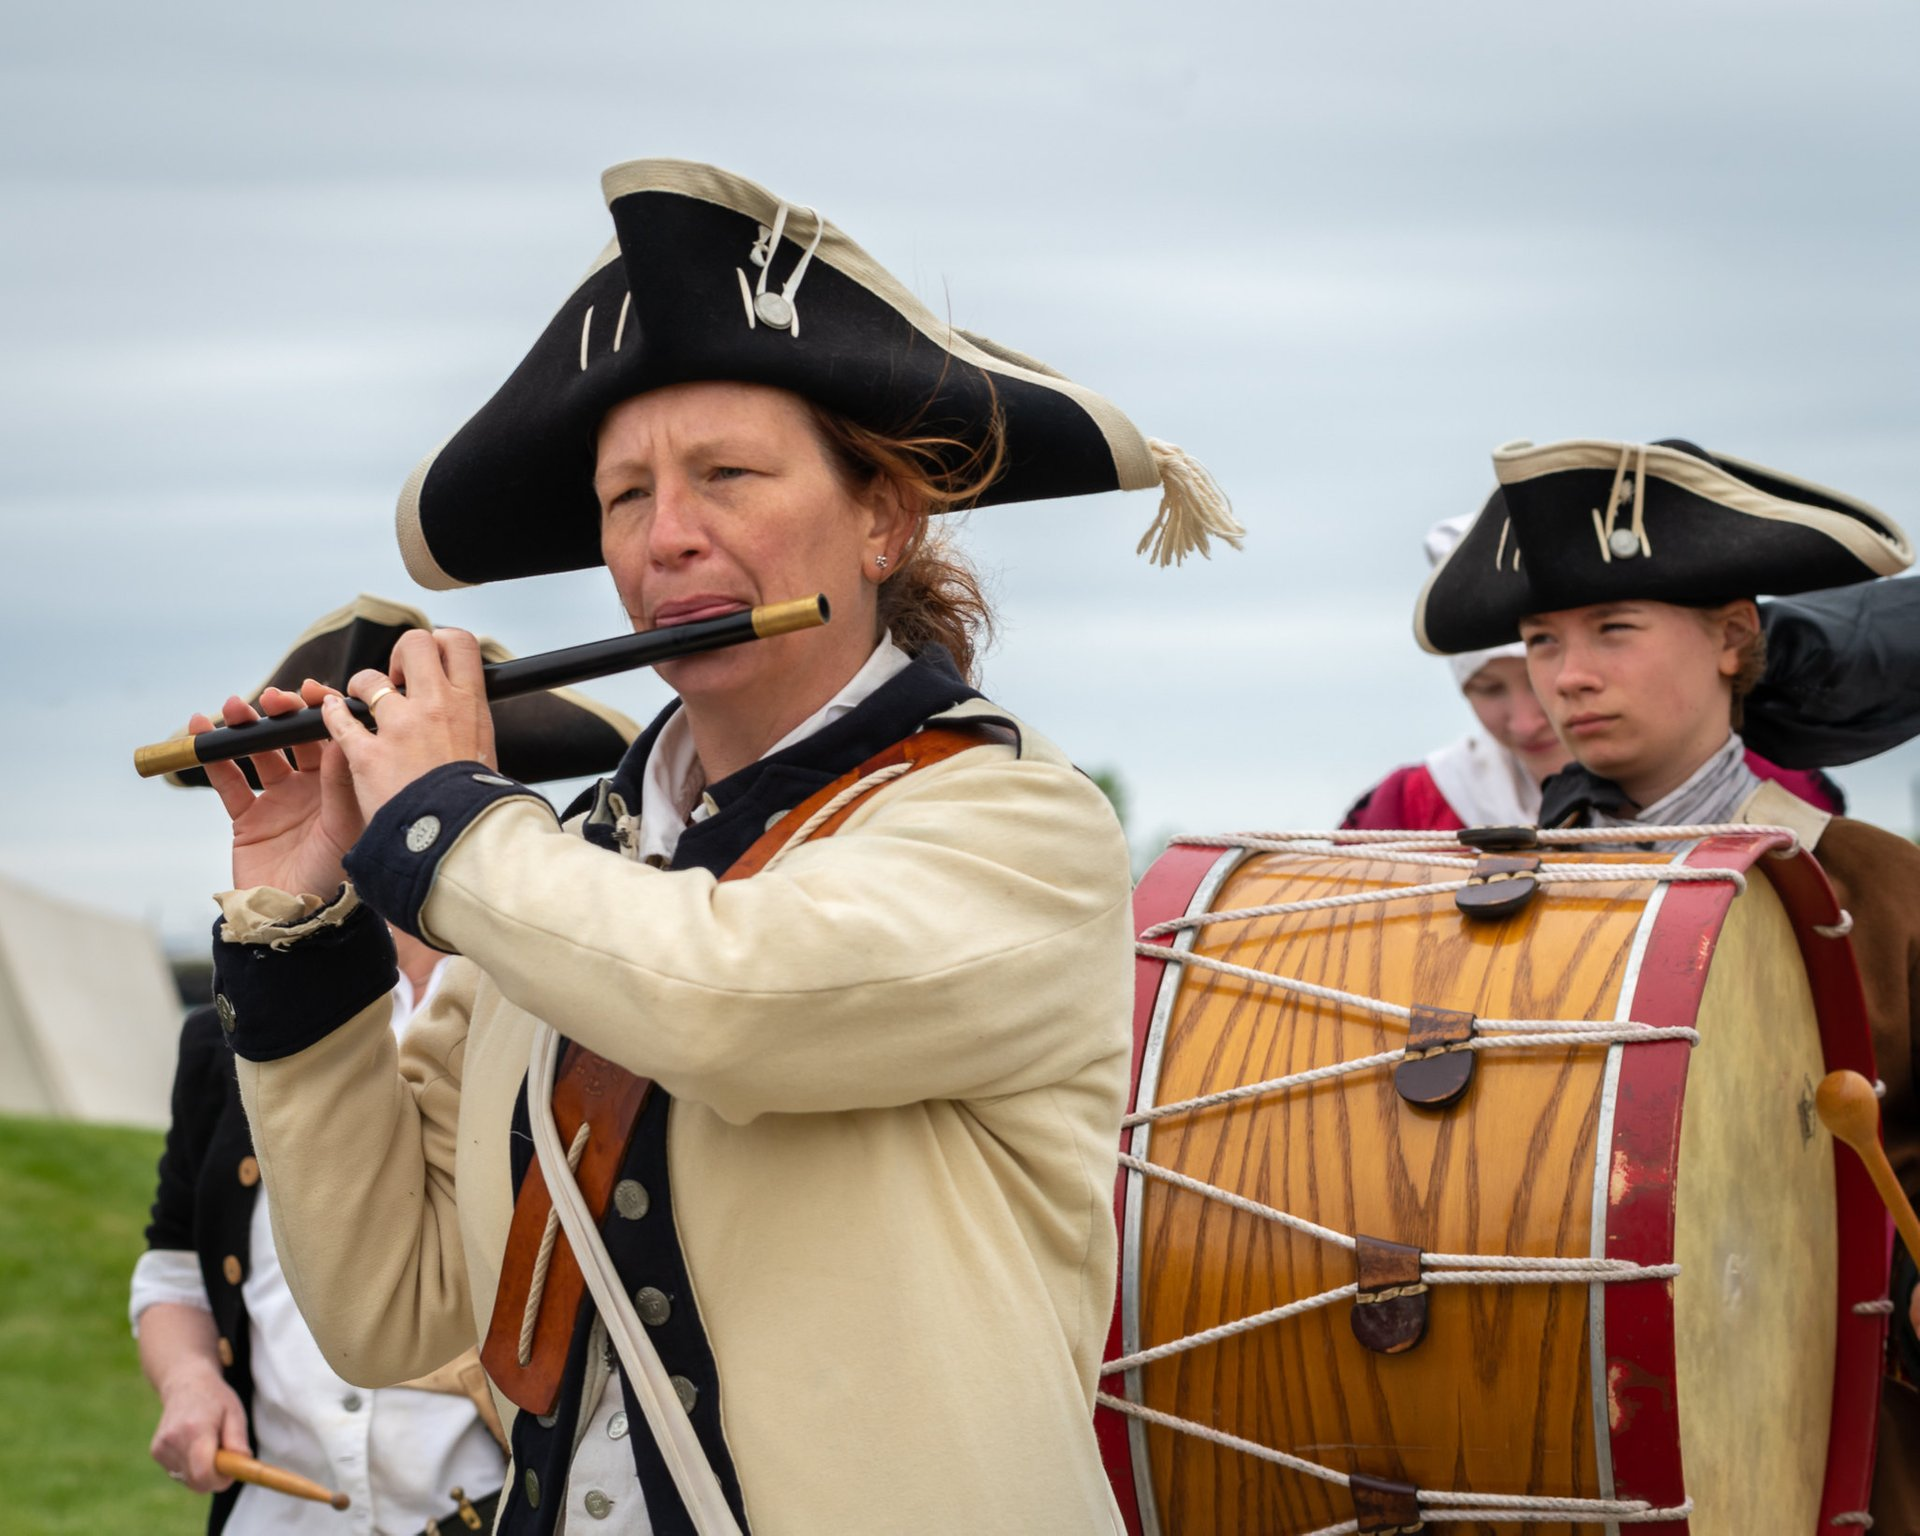 Fife and drum at the Pirate Family Daze in Port Washington 2020